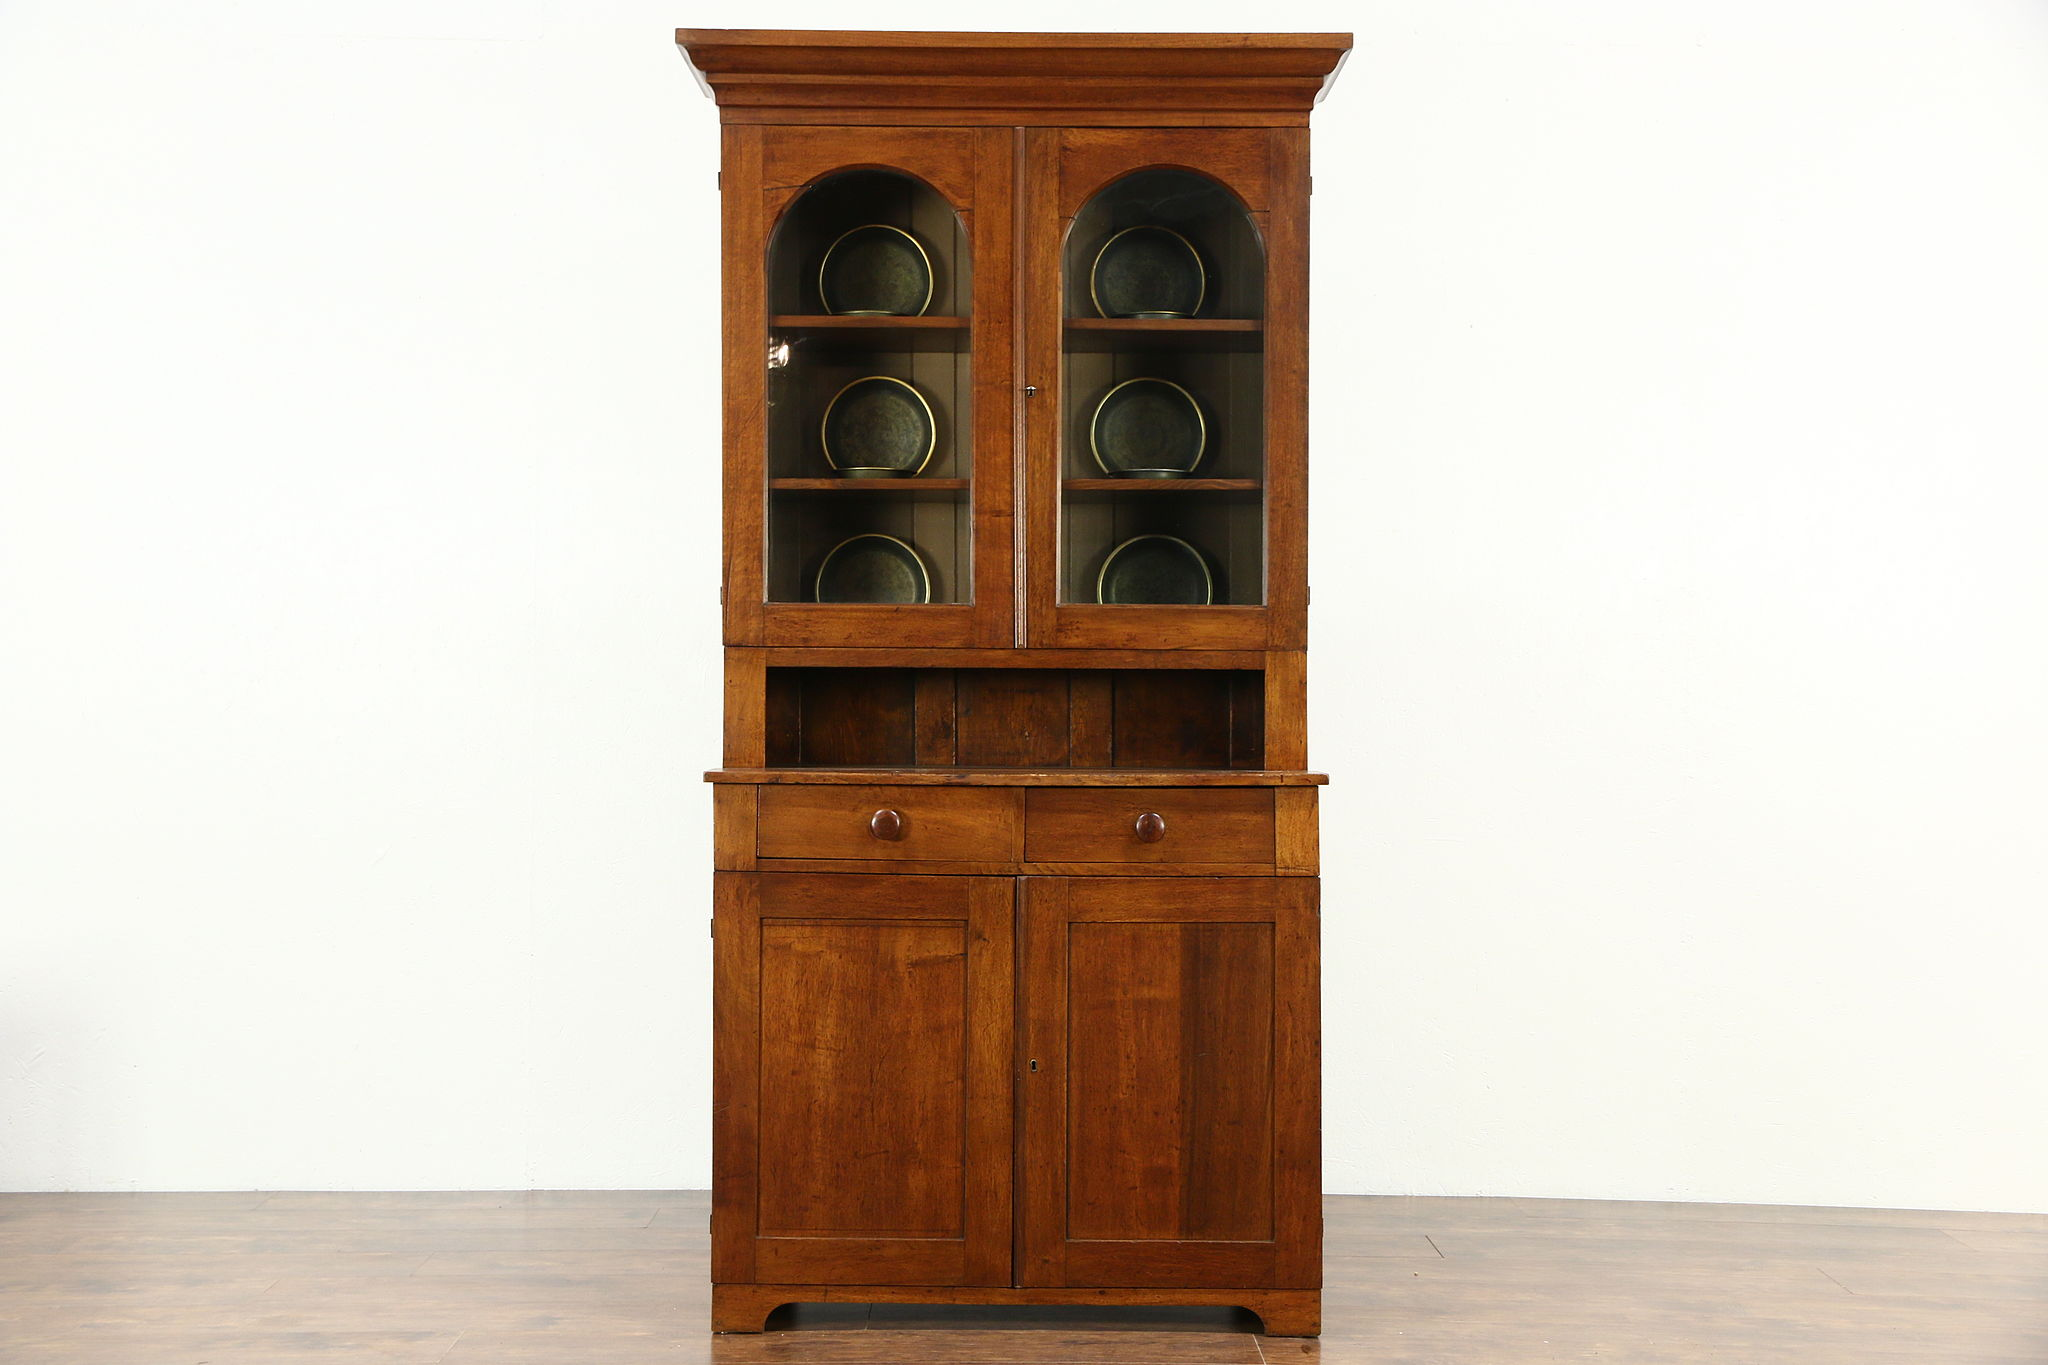 Sold Pennsylvania Walnut 1850s Antique Bookcase Or Cupboard Wavy